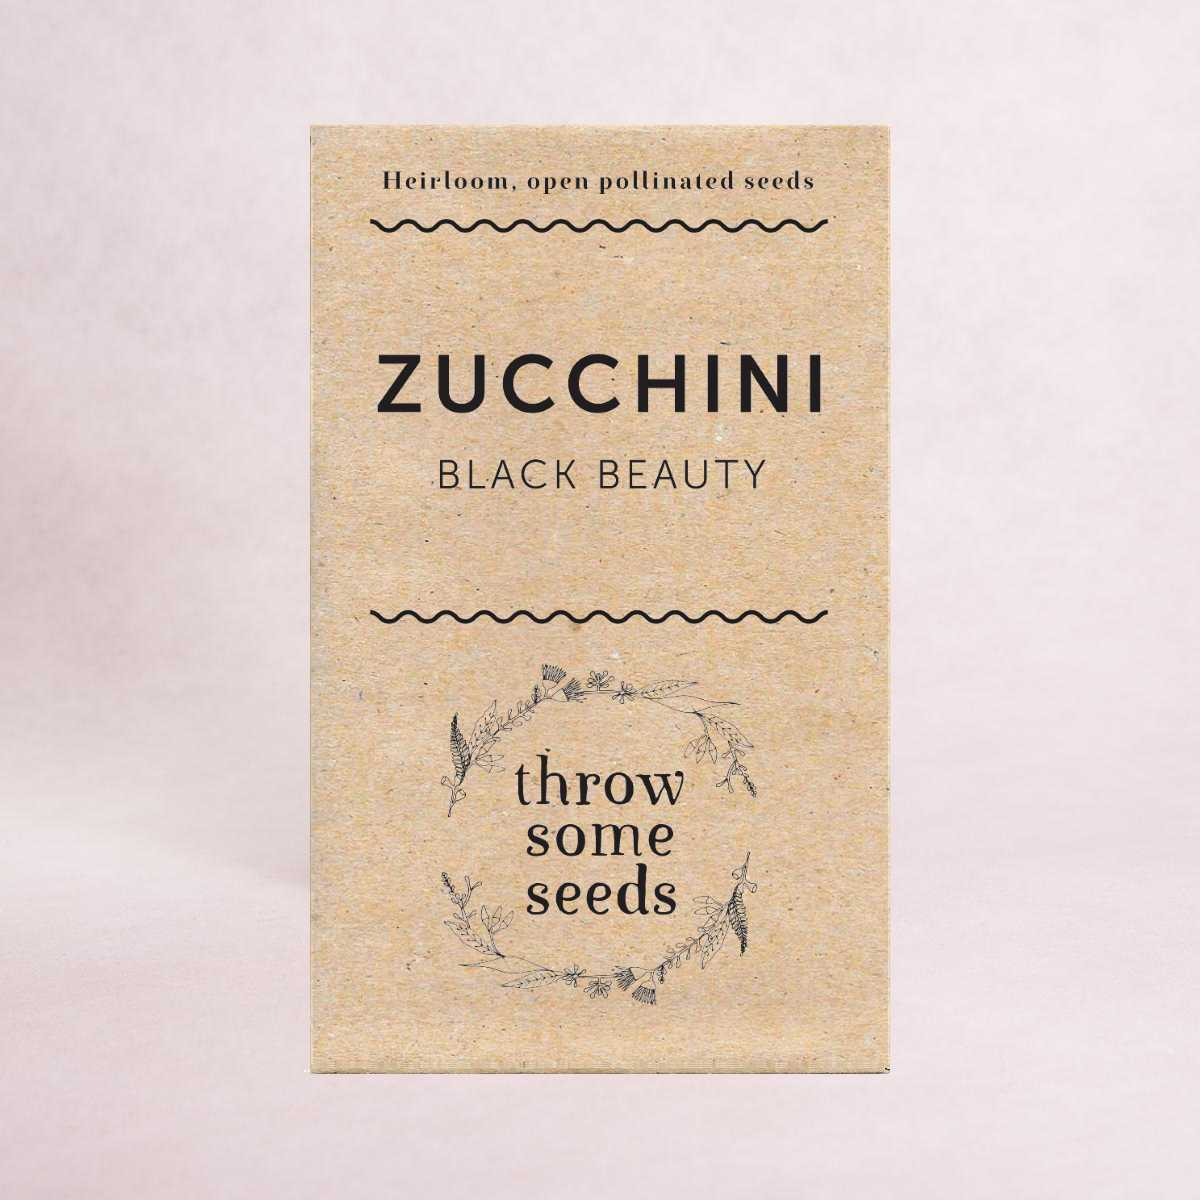 Zucchini (Black Beauty) Seeds - Seeds - Throw Some Seeds - Australian gardening gifts and eco products online!